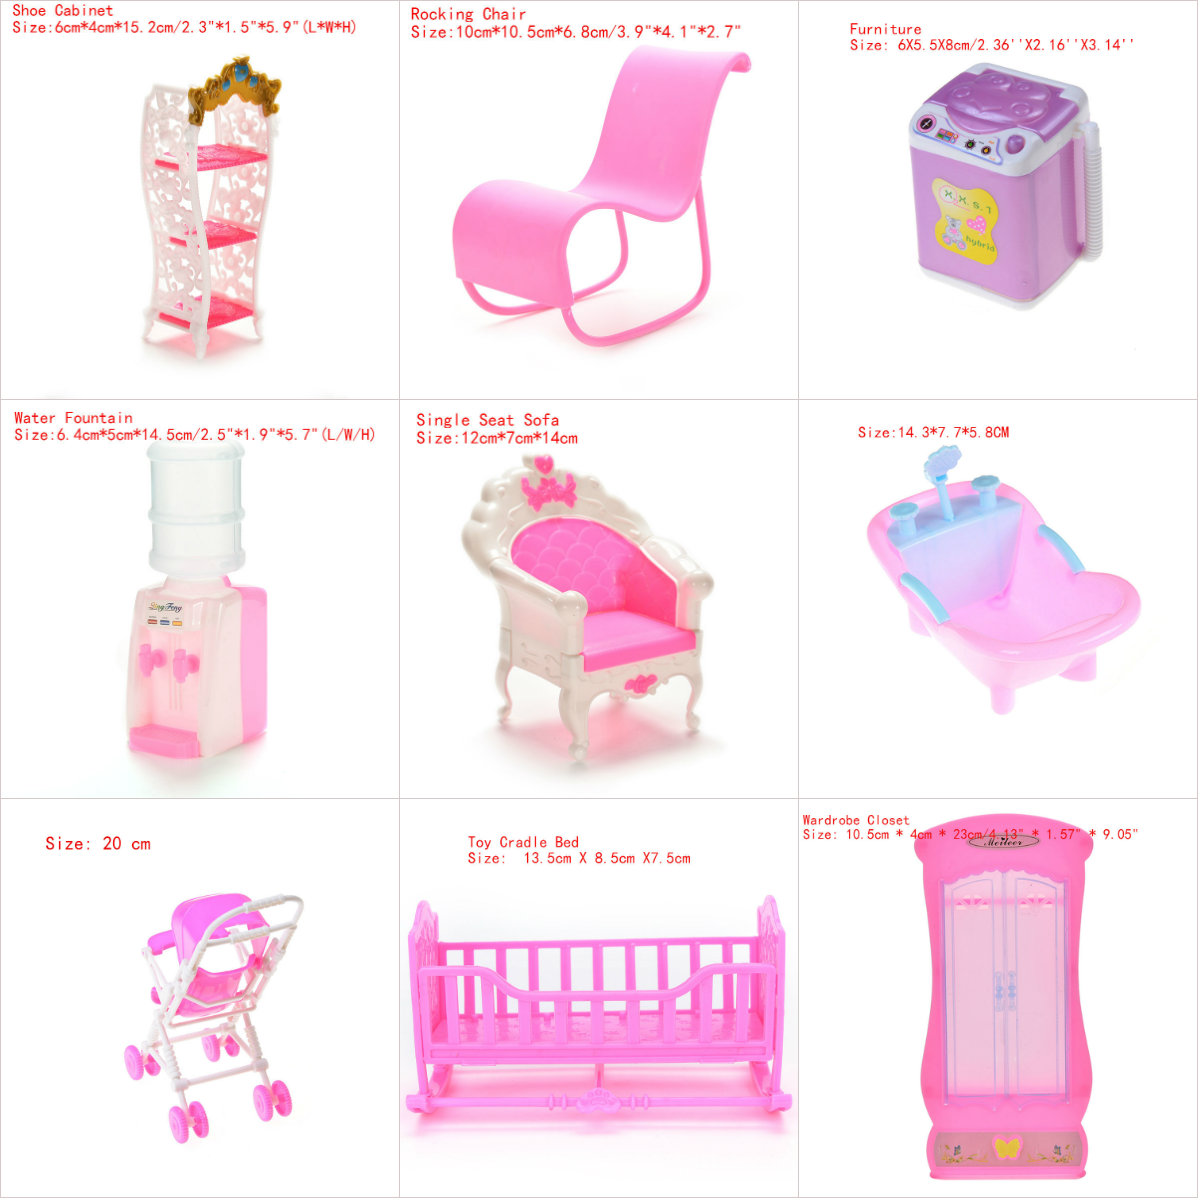 Sensational Us 1 0 17 Off 1Pcs Sofa Rocking Chair Bathtub Accessories For Dolls Kids Girls Role Play Toys Gift Chair Furniture For Dolls House Decoration In Unemploymentrelief Wooden Chair Designs For Living Room Unemploymentrelieforg